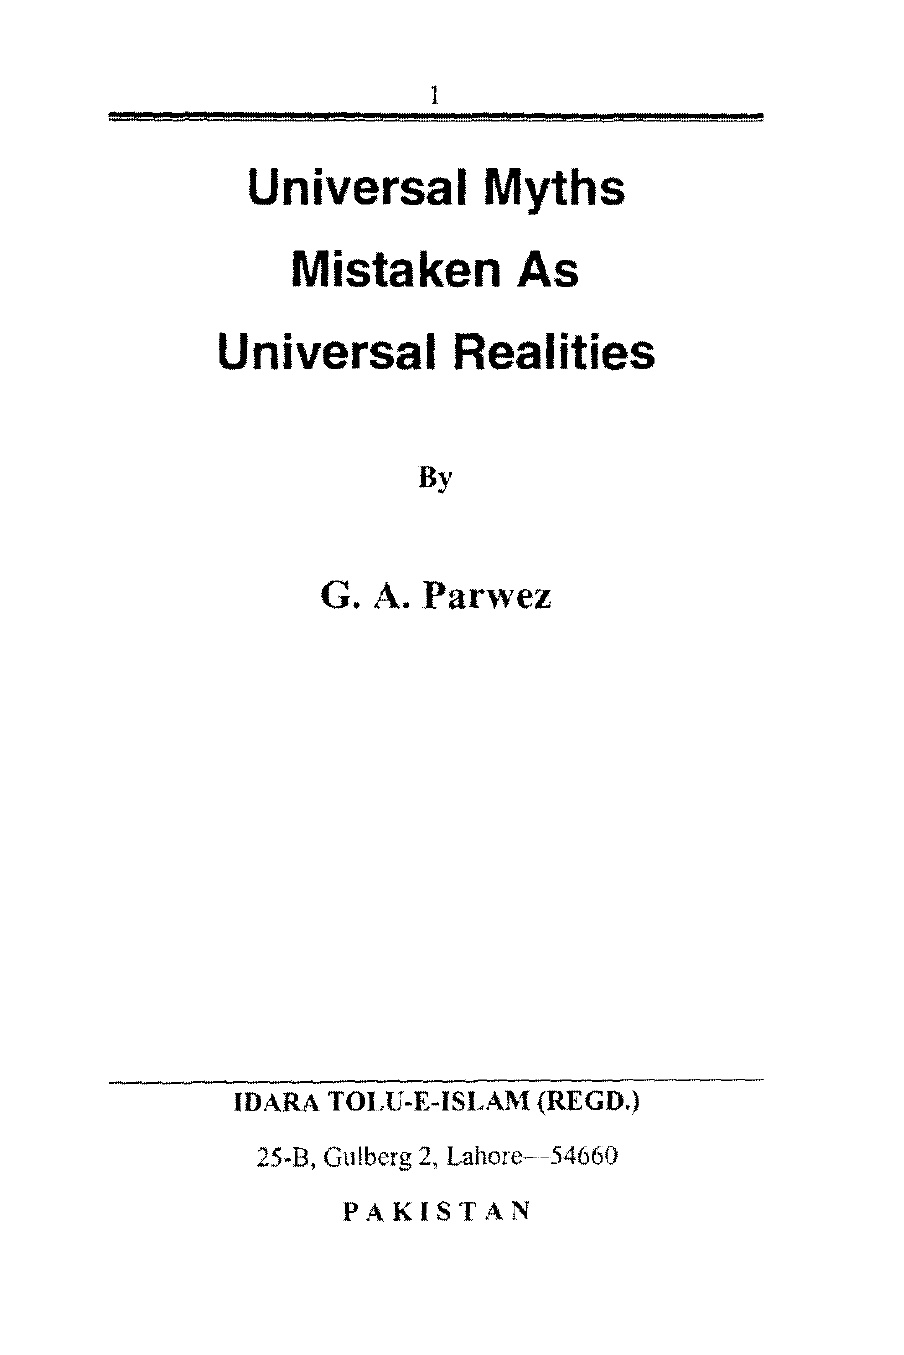 Universal-Myths-Mistaken-as-Universal-Realities